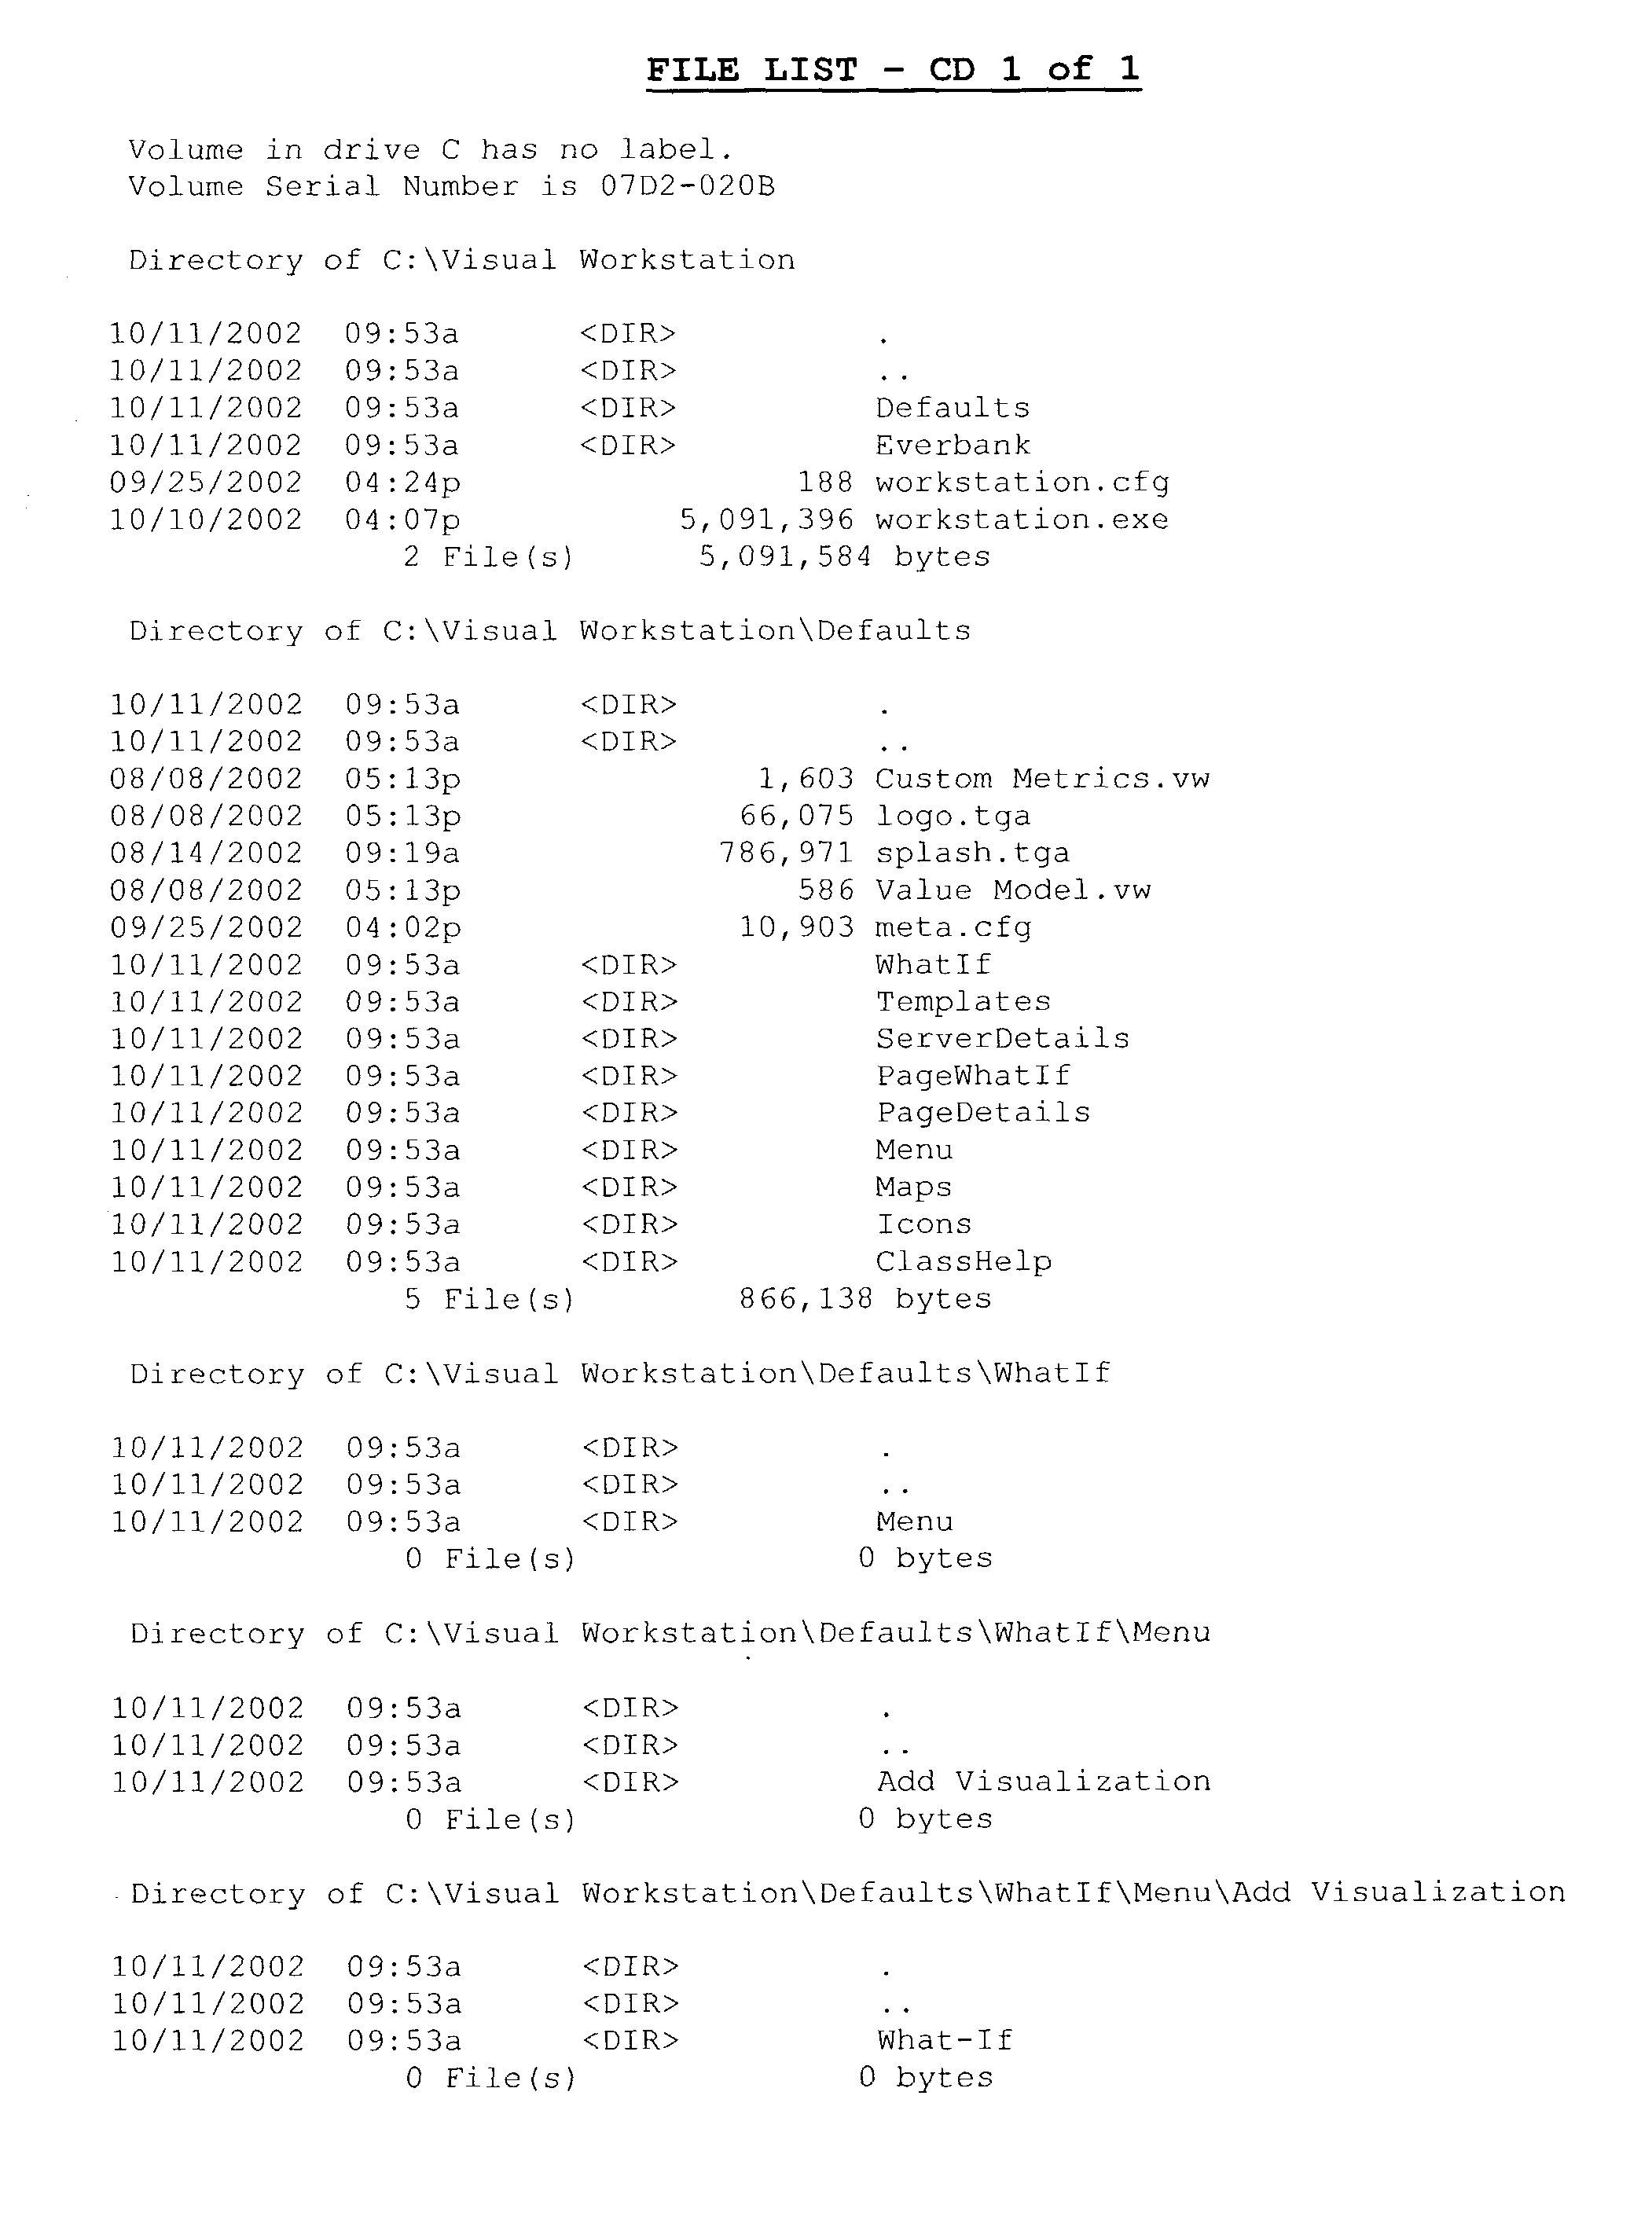 US20030144868A1 - System, method, and computer program